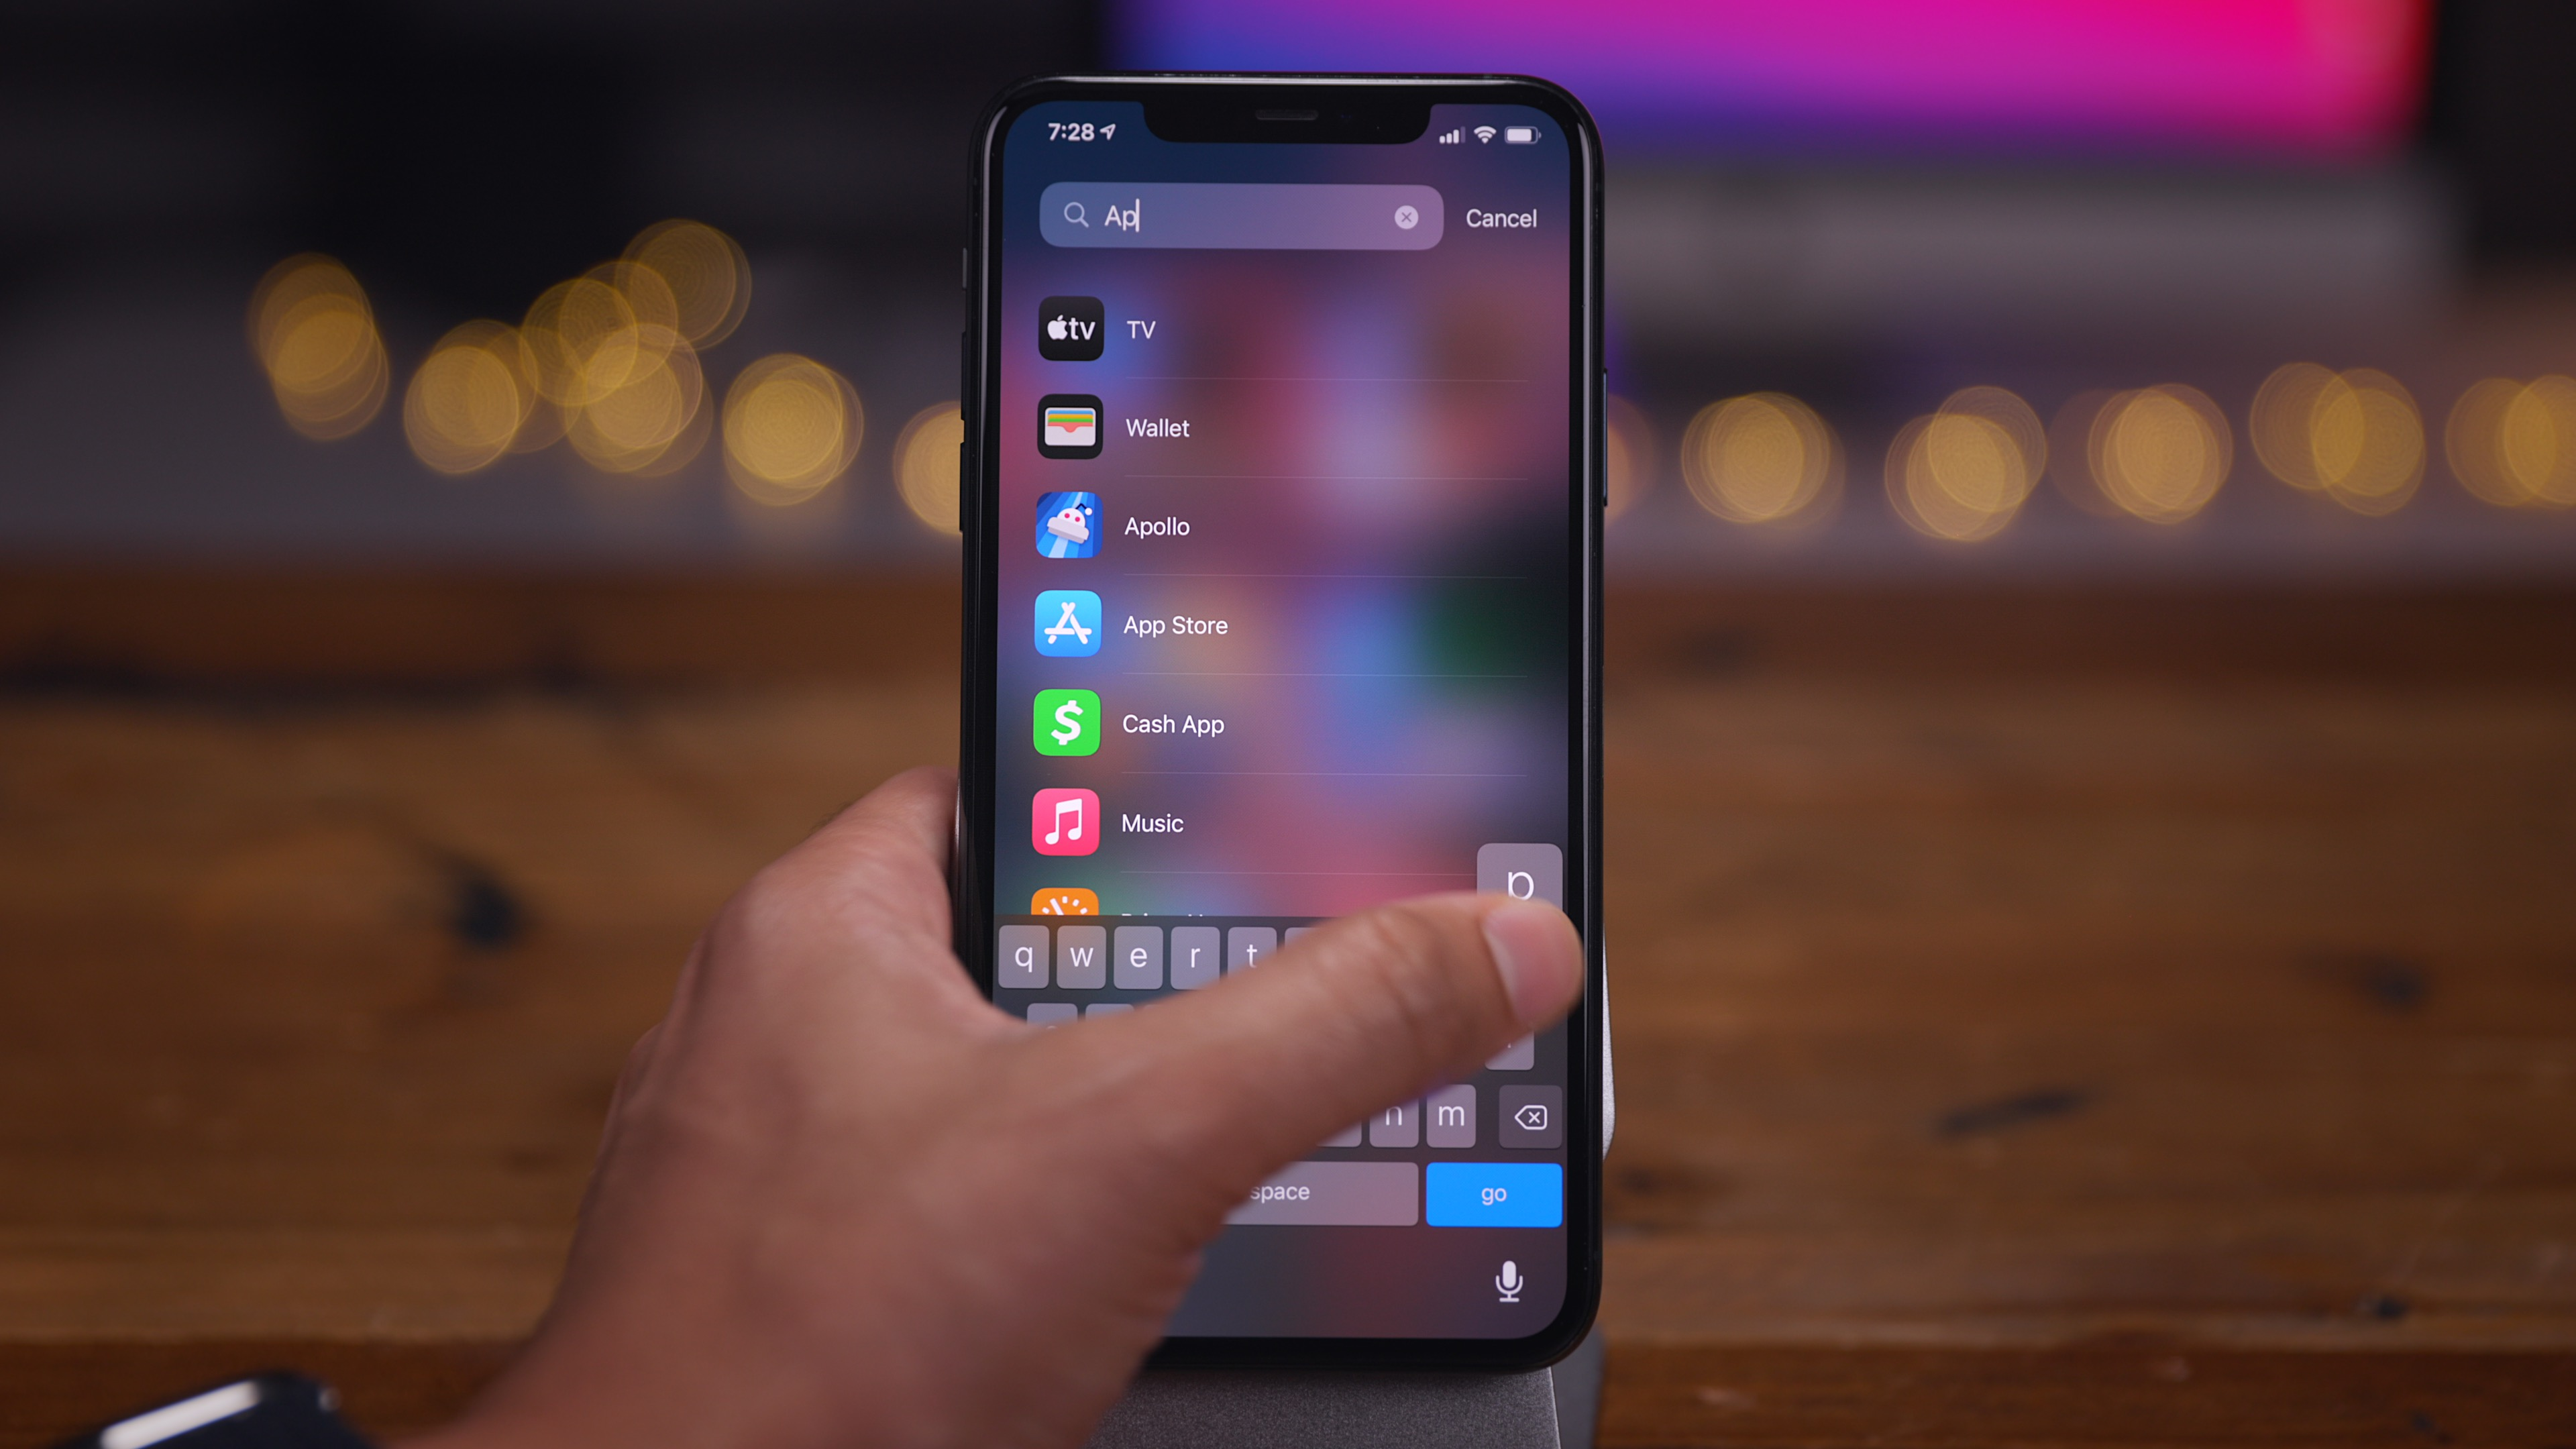 Ios 14 home screen tips and tricks how to search all apps on your iphone